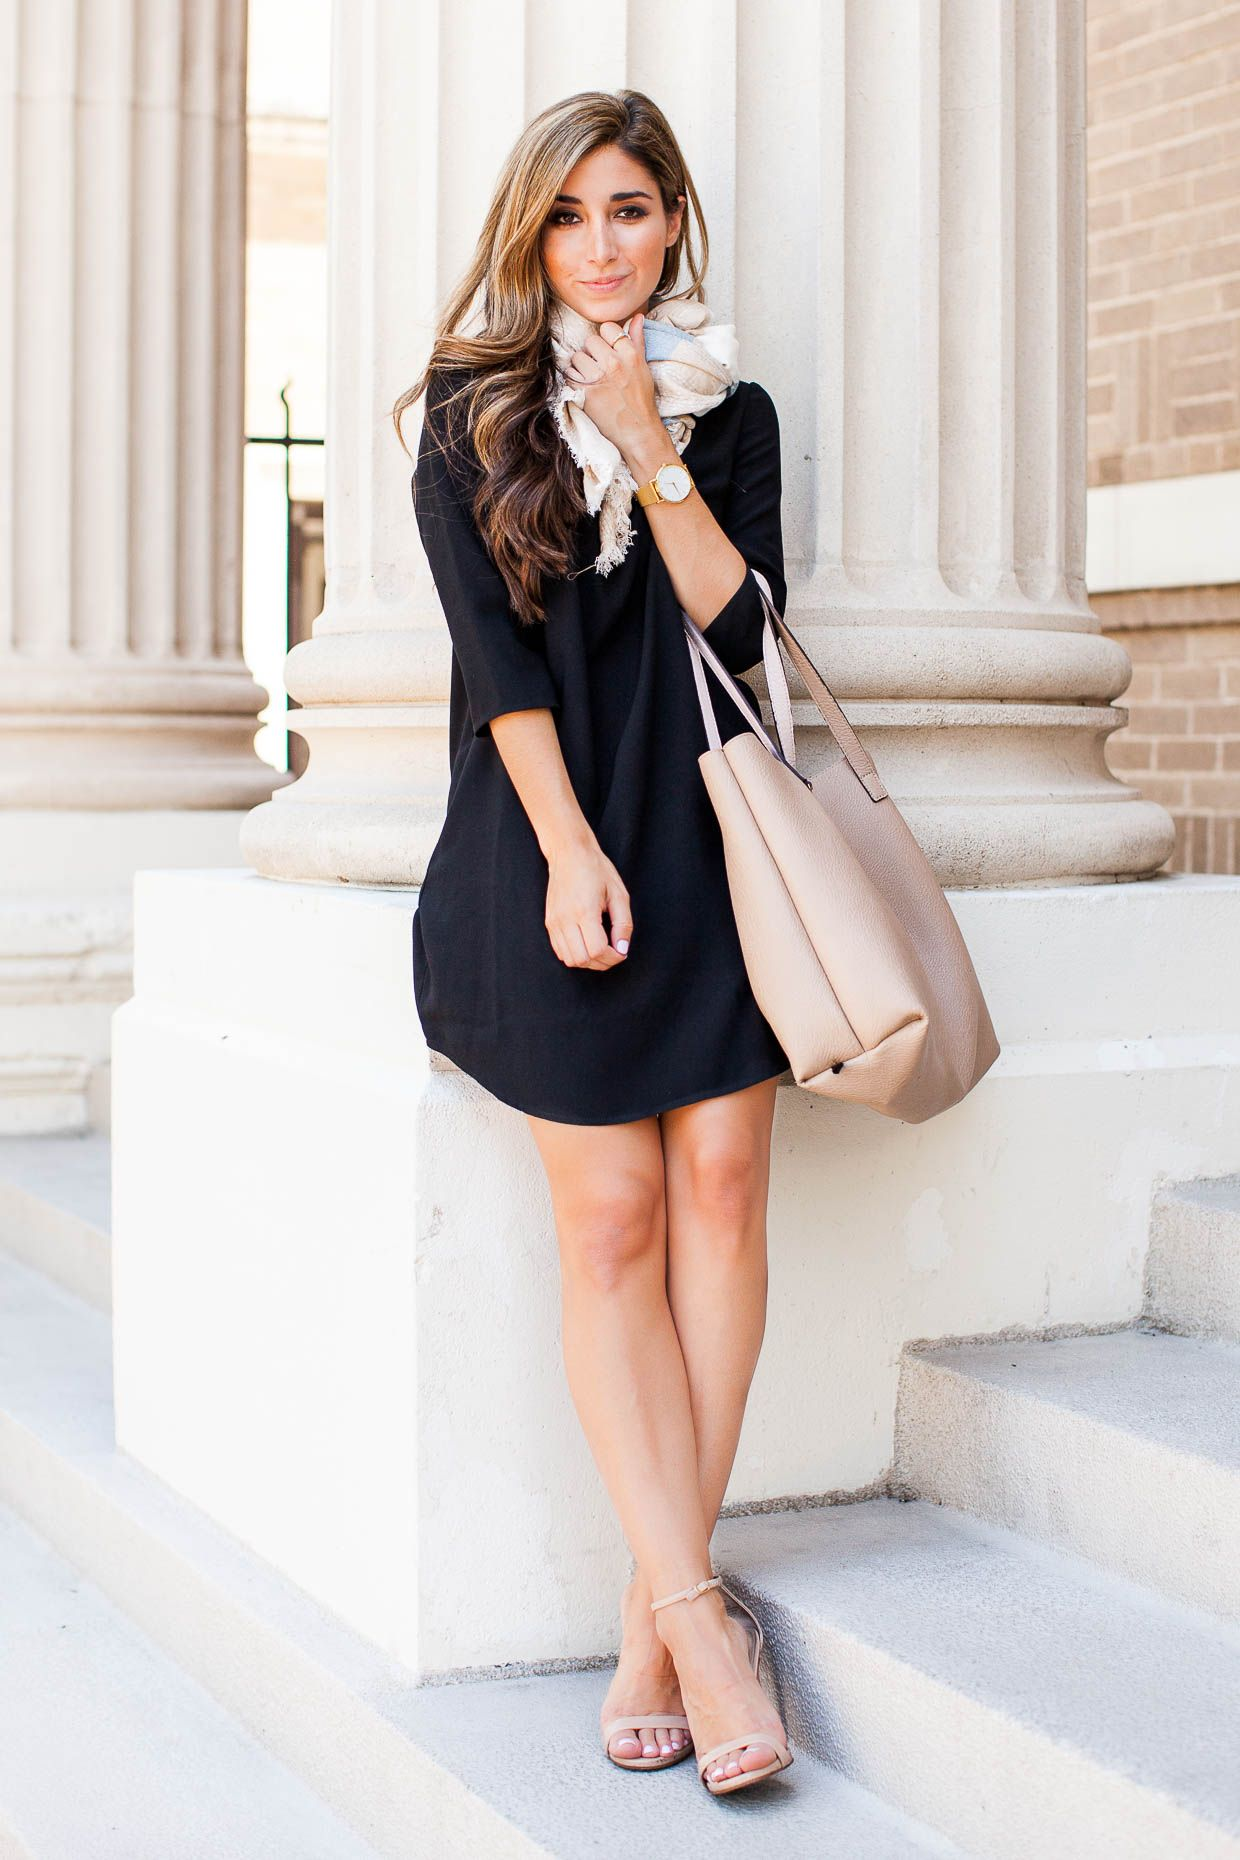 59 cute spring outfit ideas to try right now | spring style